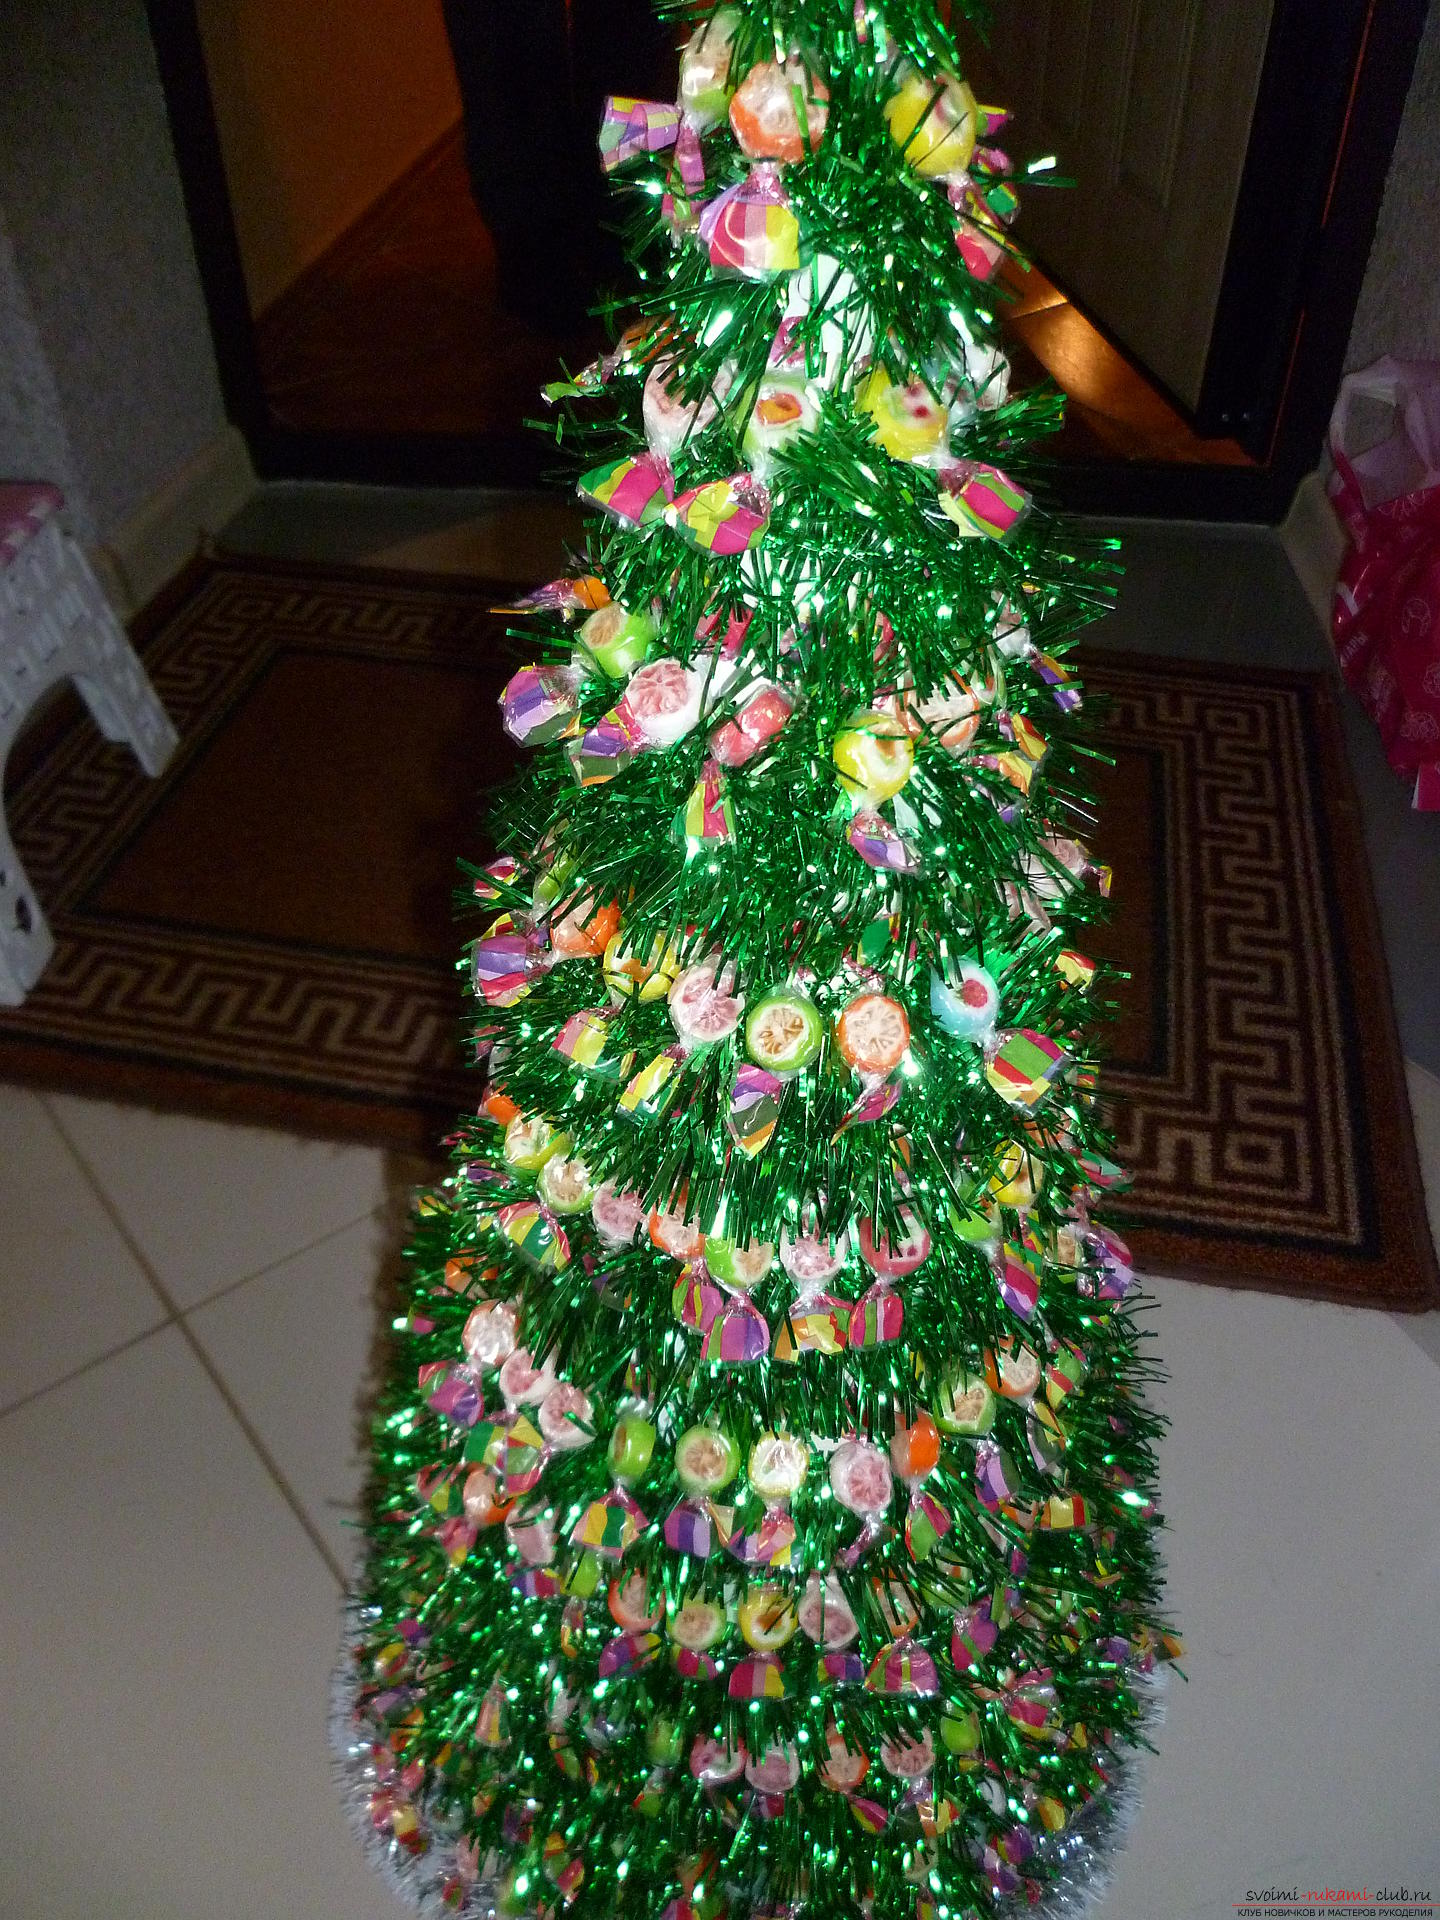 New Year's crafts are made from any materials, even from sweets. A fir-tree made of chocolates is created very easily and quickly, this New Year's craft will please all children .. Photo №1